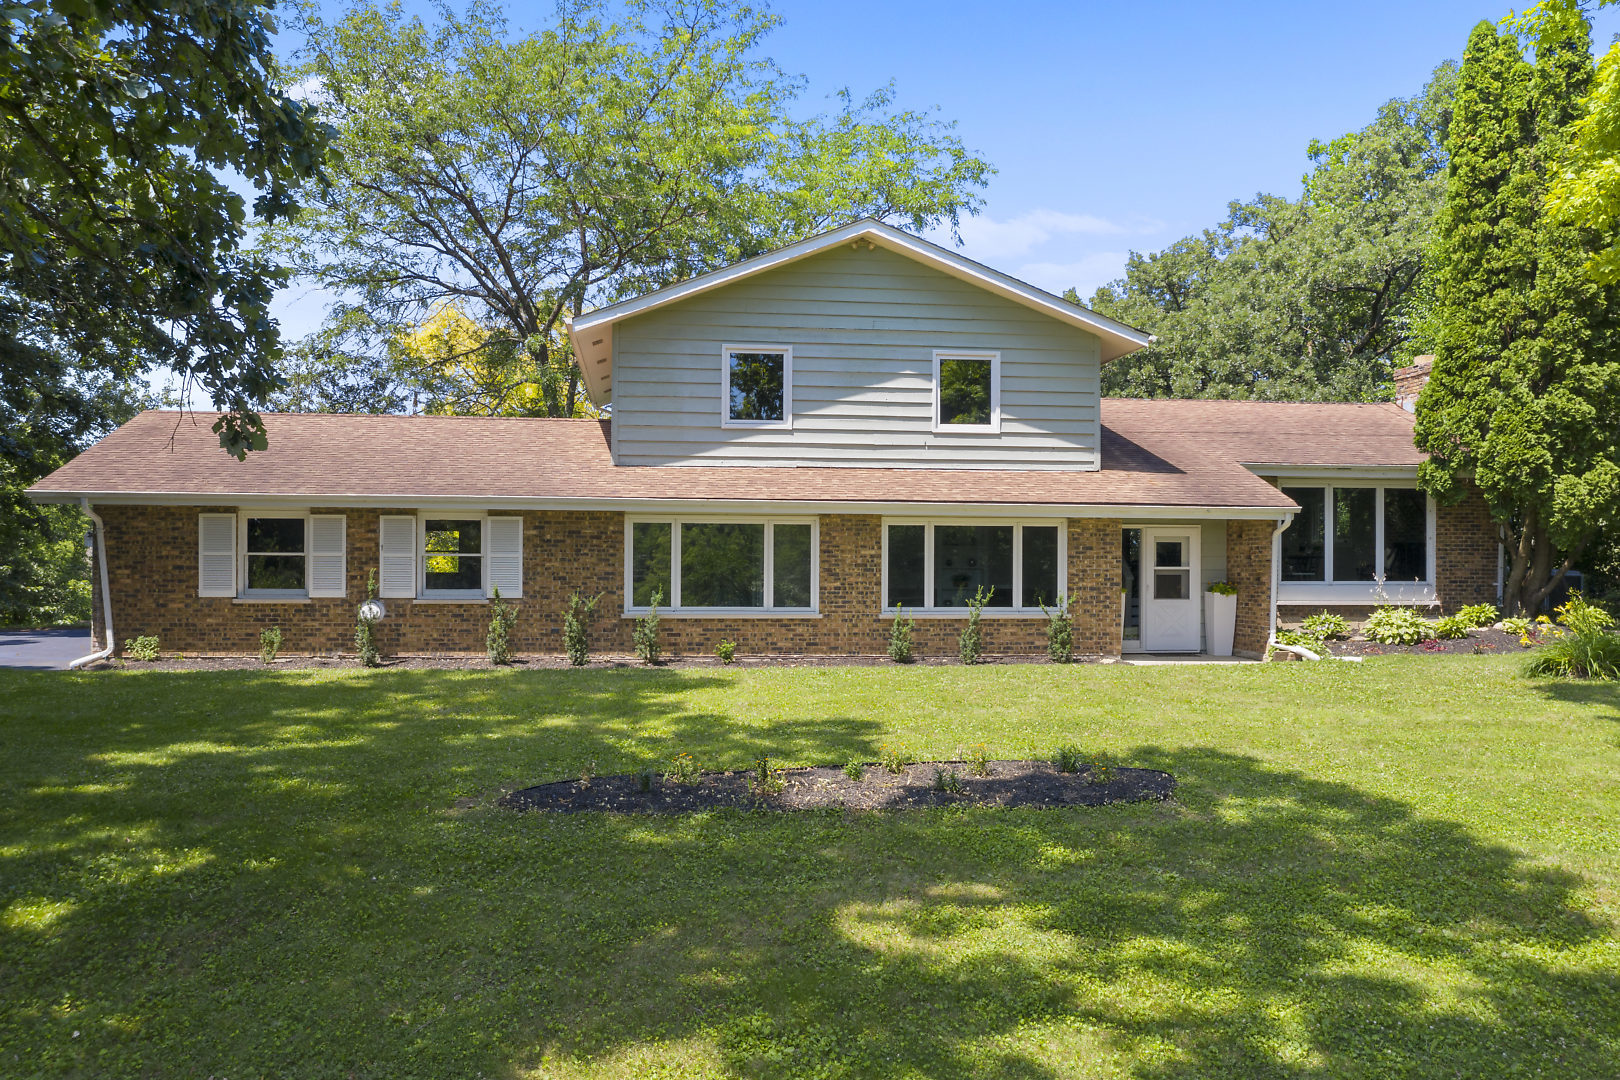 Photo for 41W314 Whitney Road, ST. CHARLES, IL 60175 (MLS # 10463647)